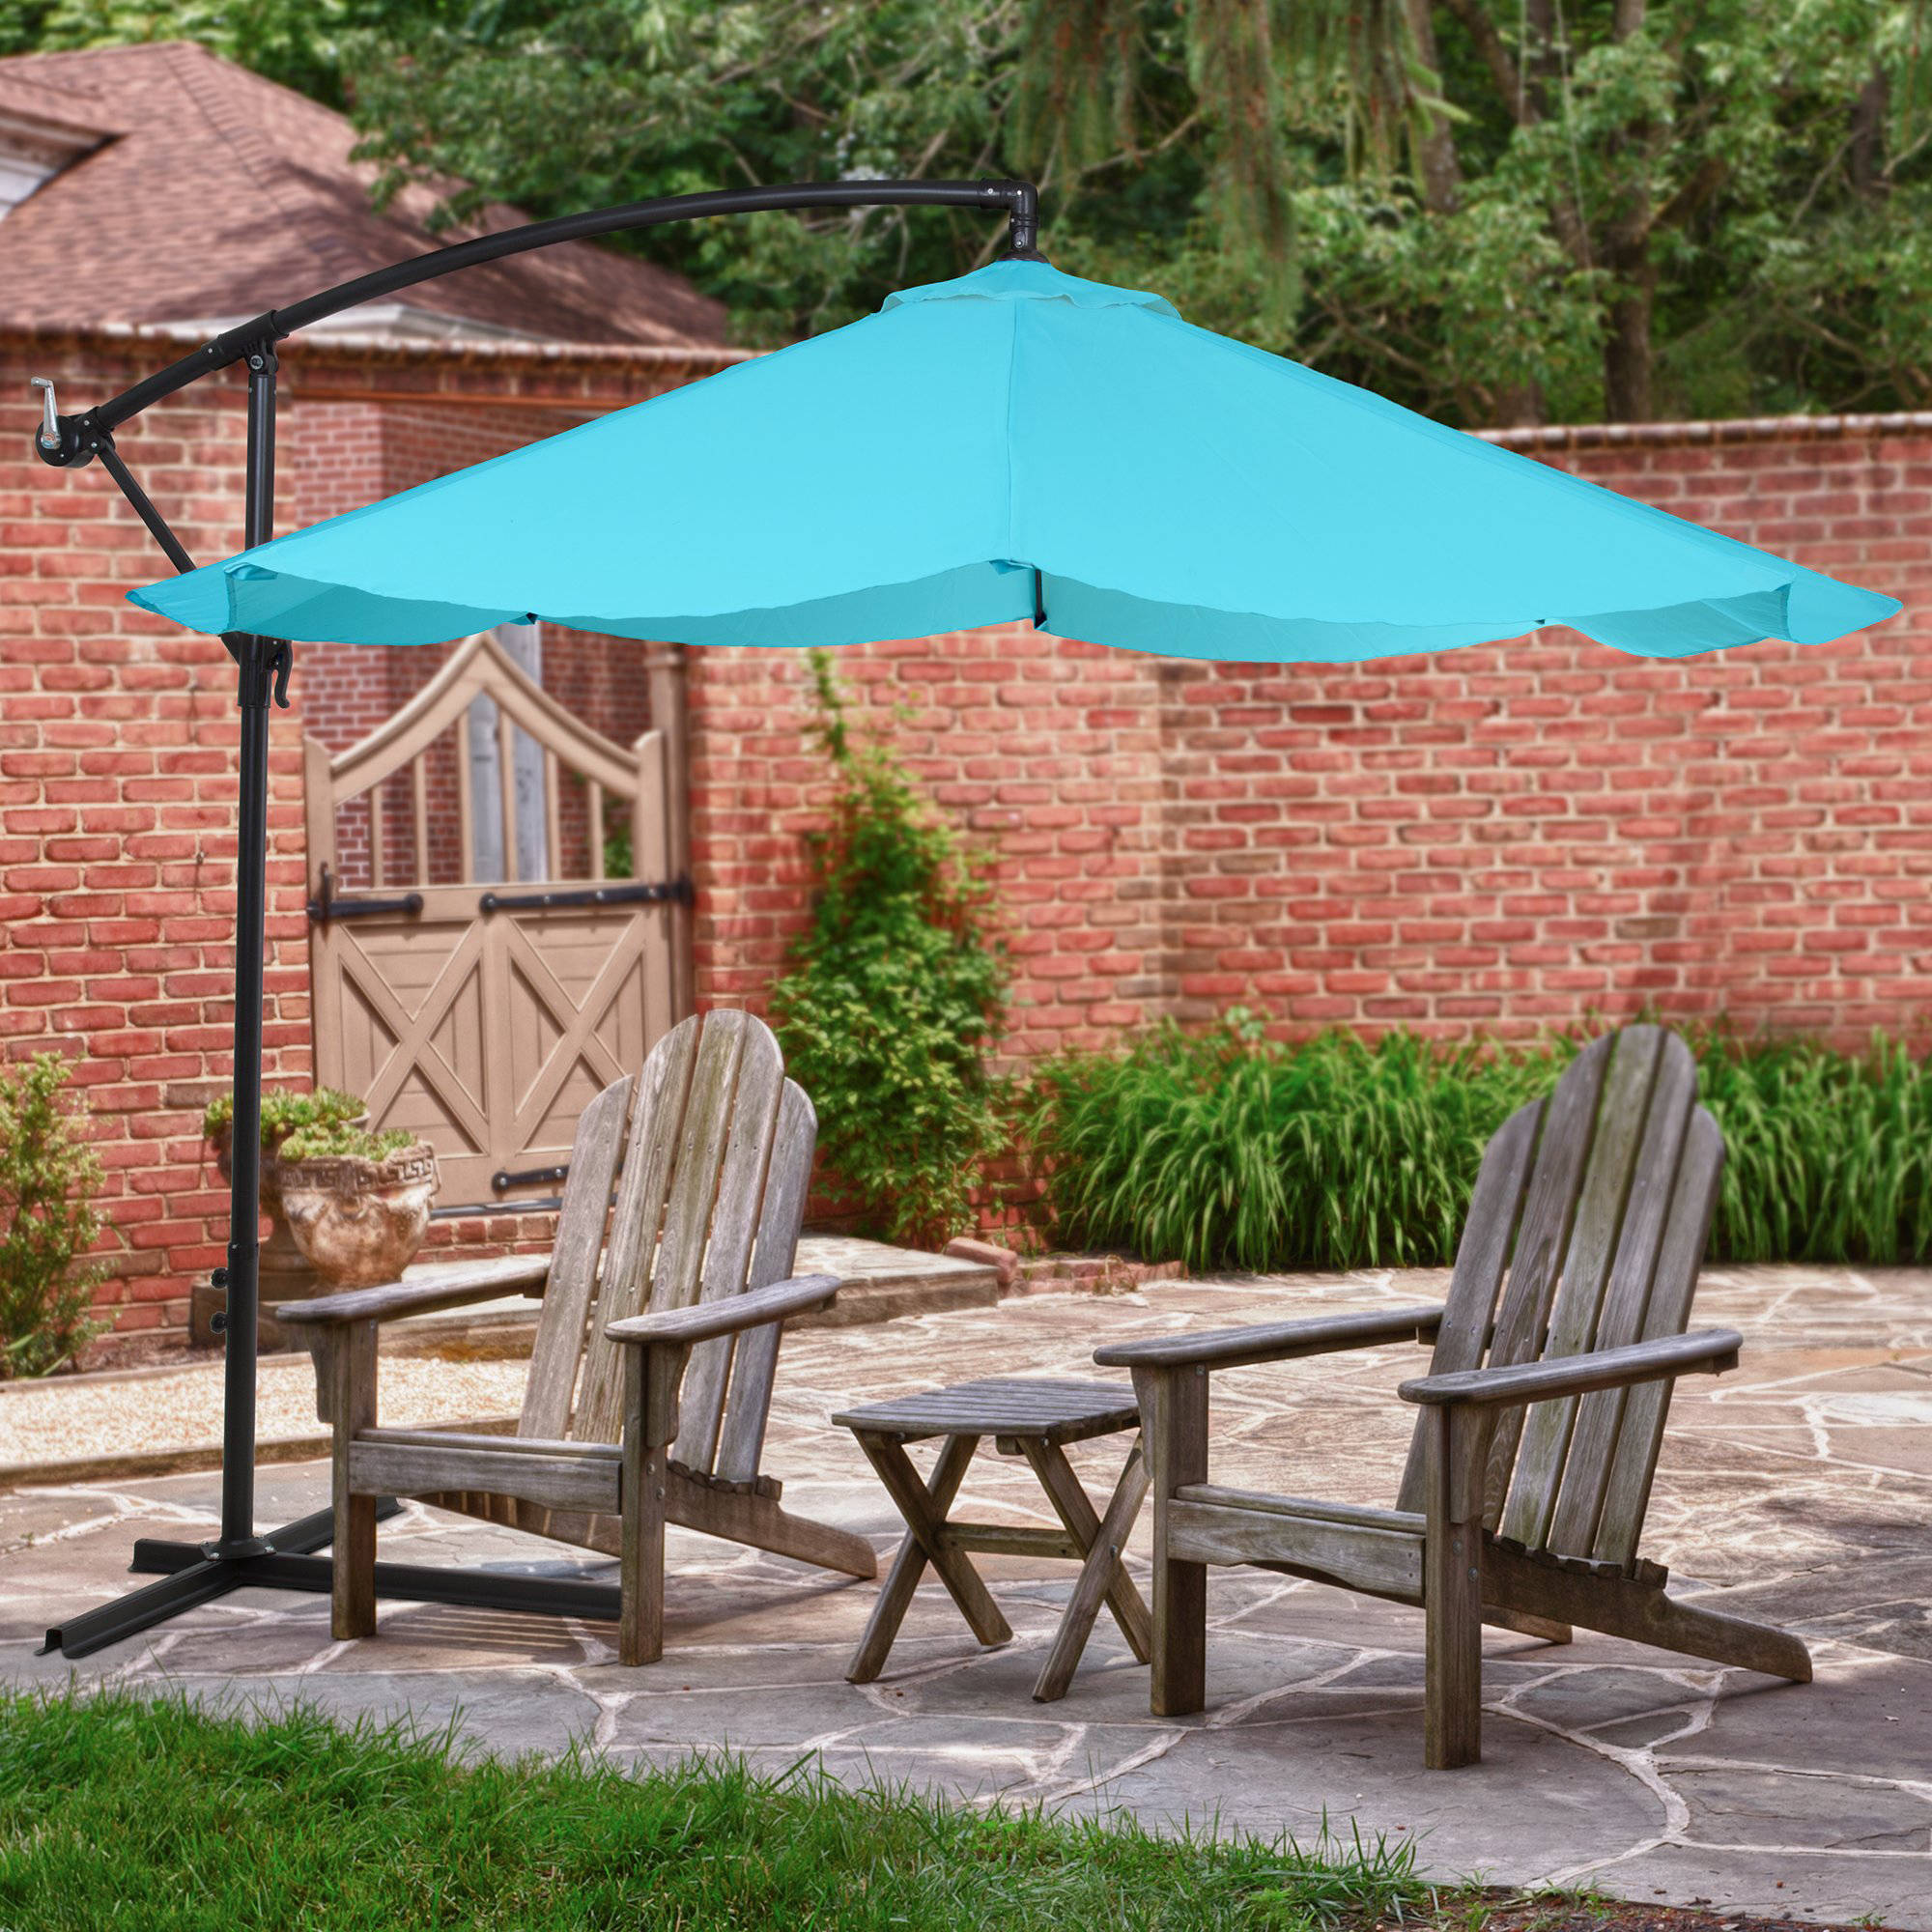 Pure Garden fset 10 Aluminum Hanging Patio Umbrella Walmart